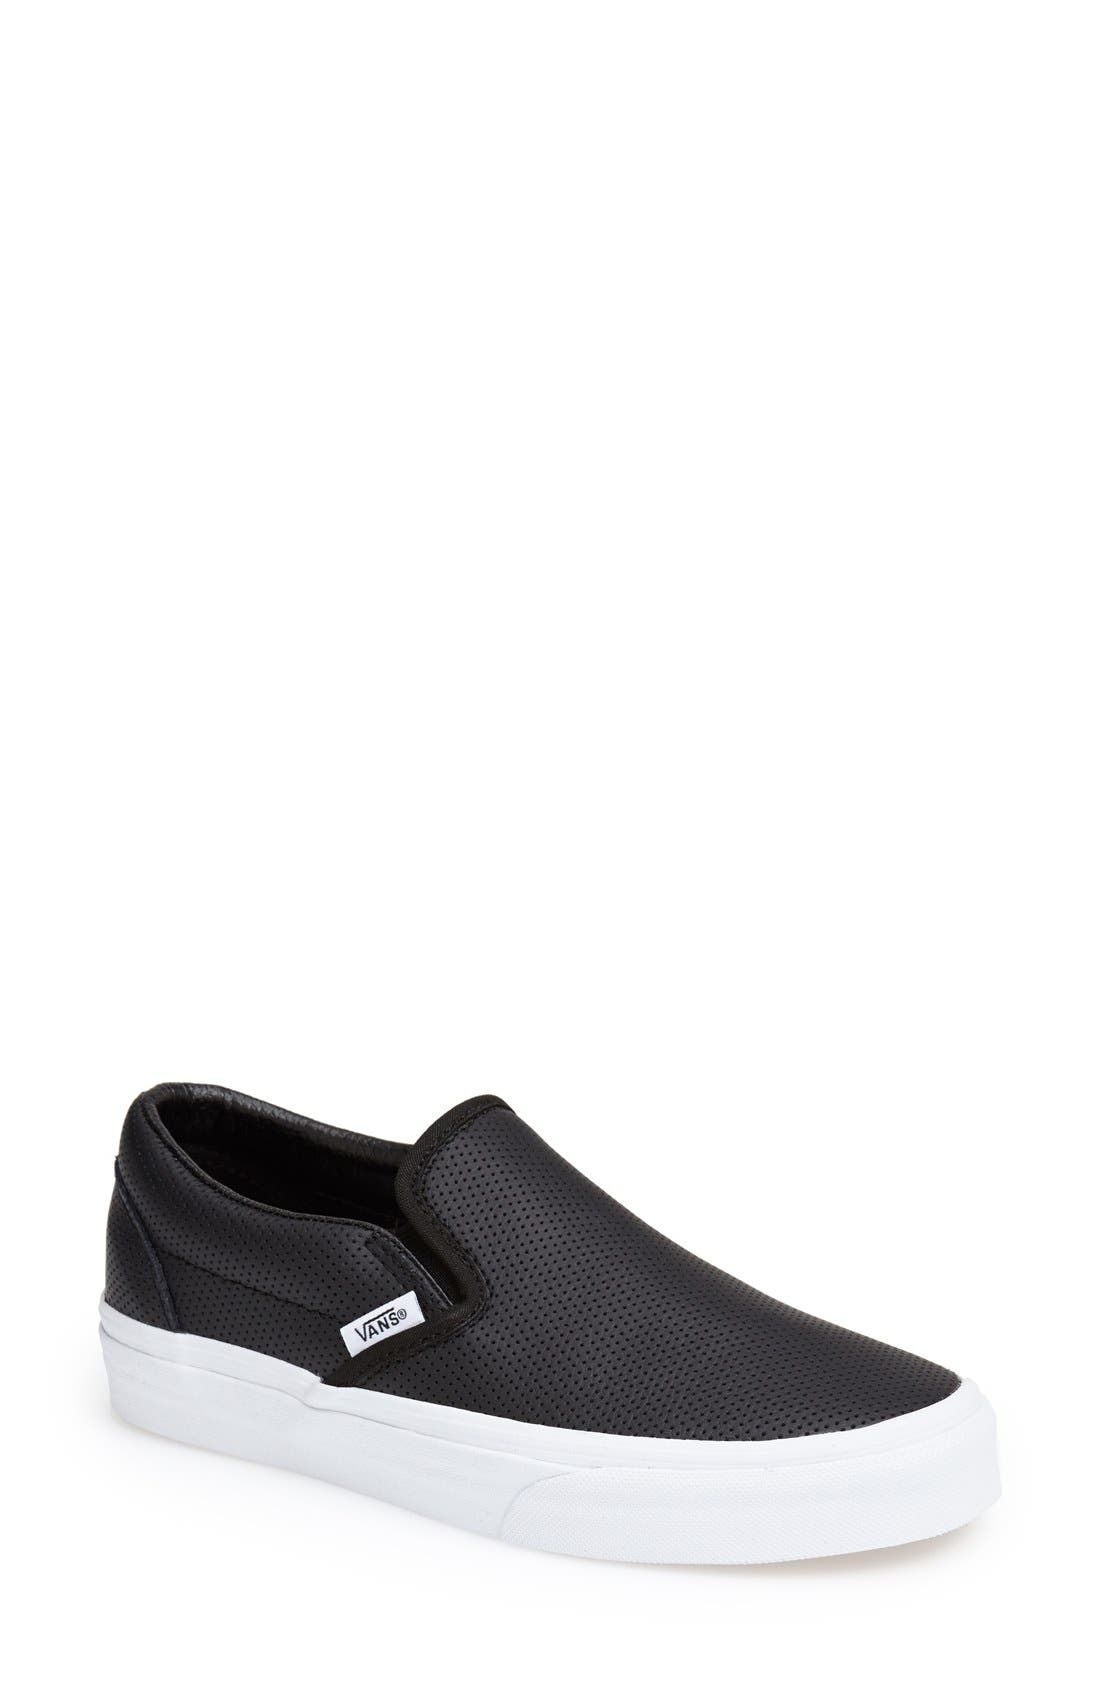 Alternate Image 1 Selected - Vans 'Classic' Sneaker (Women)